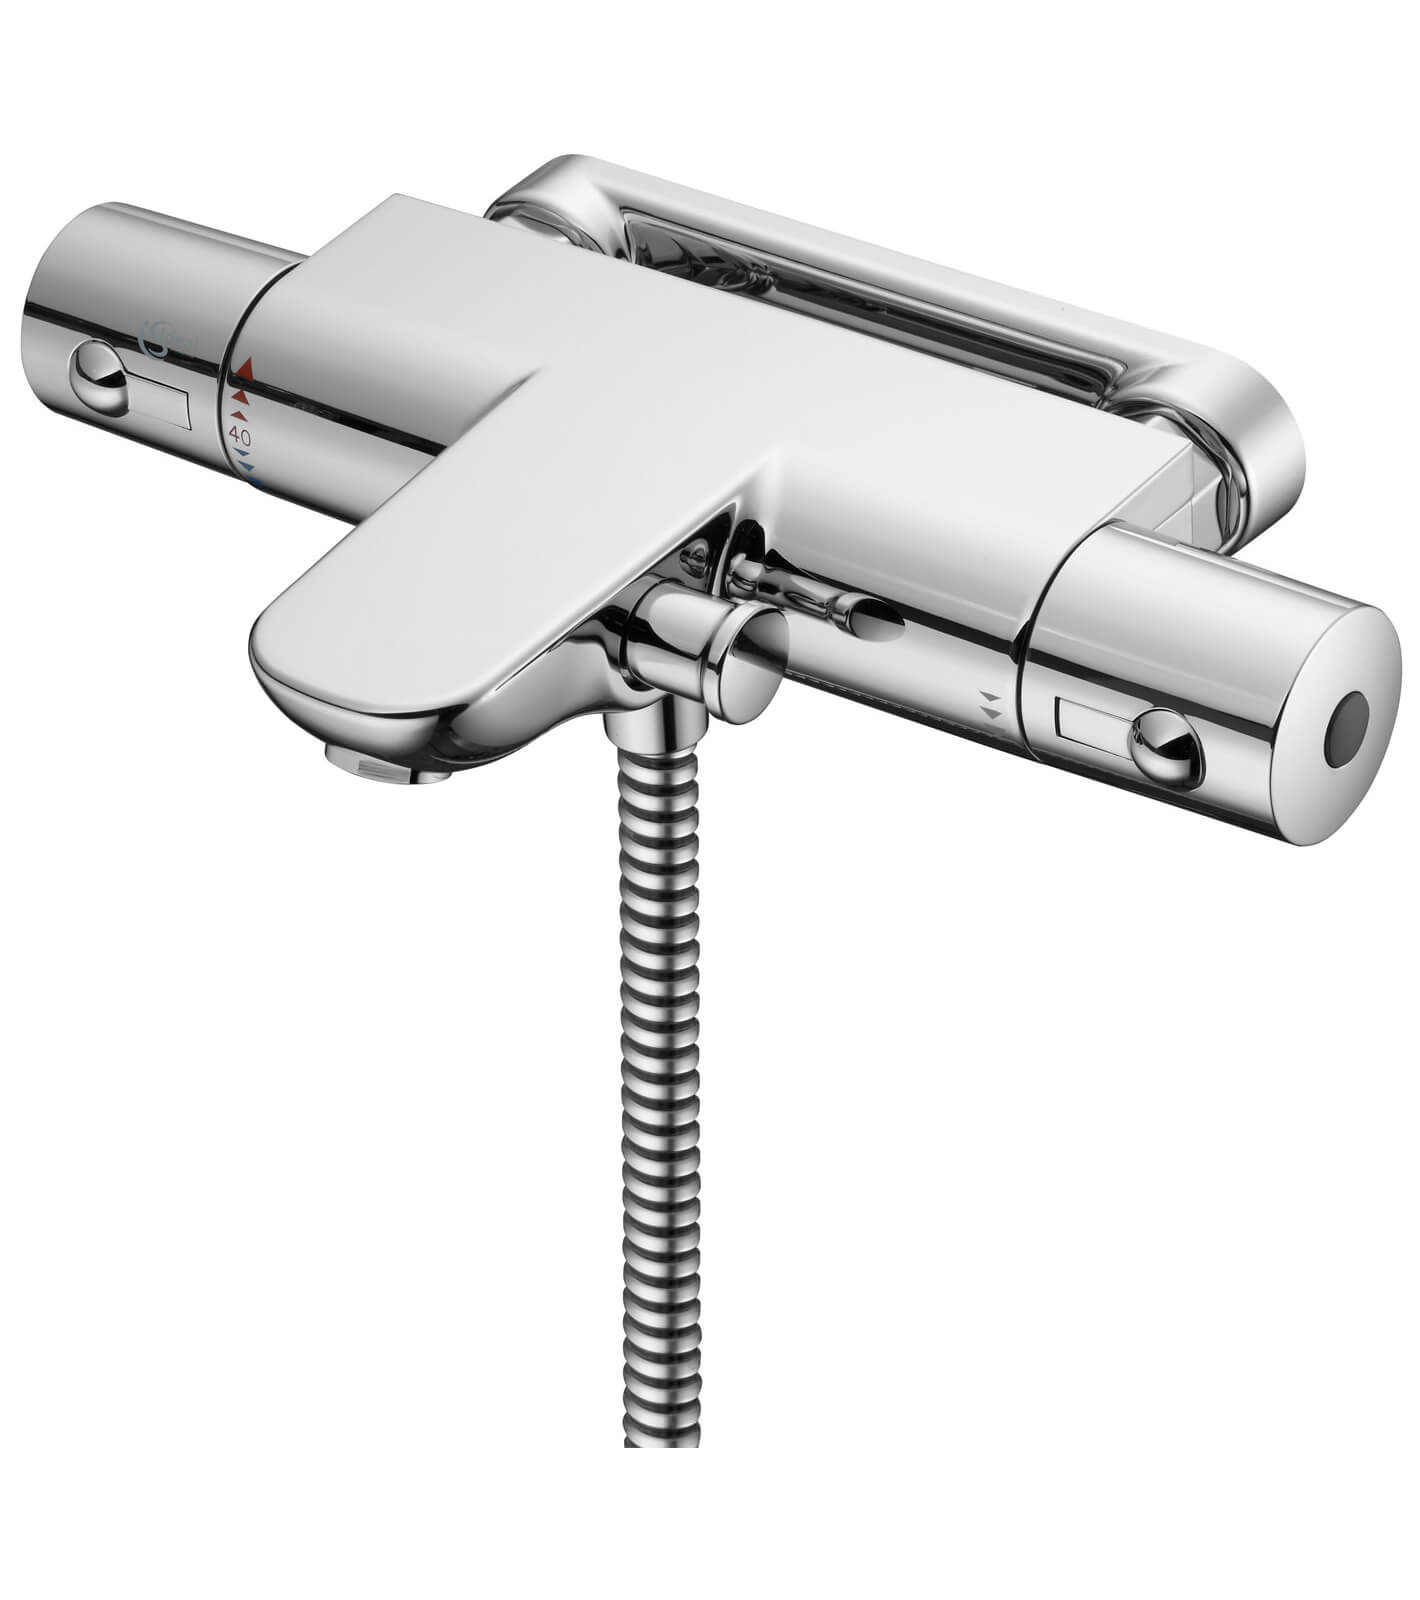 Thermostatic Bath Shower Mixer Tap ideal standard alto ecotherm thermostatic bath shower mixer tap